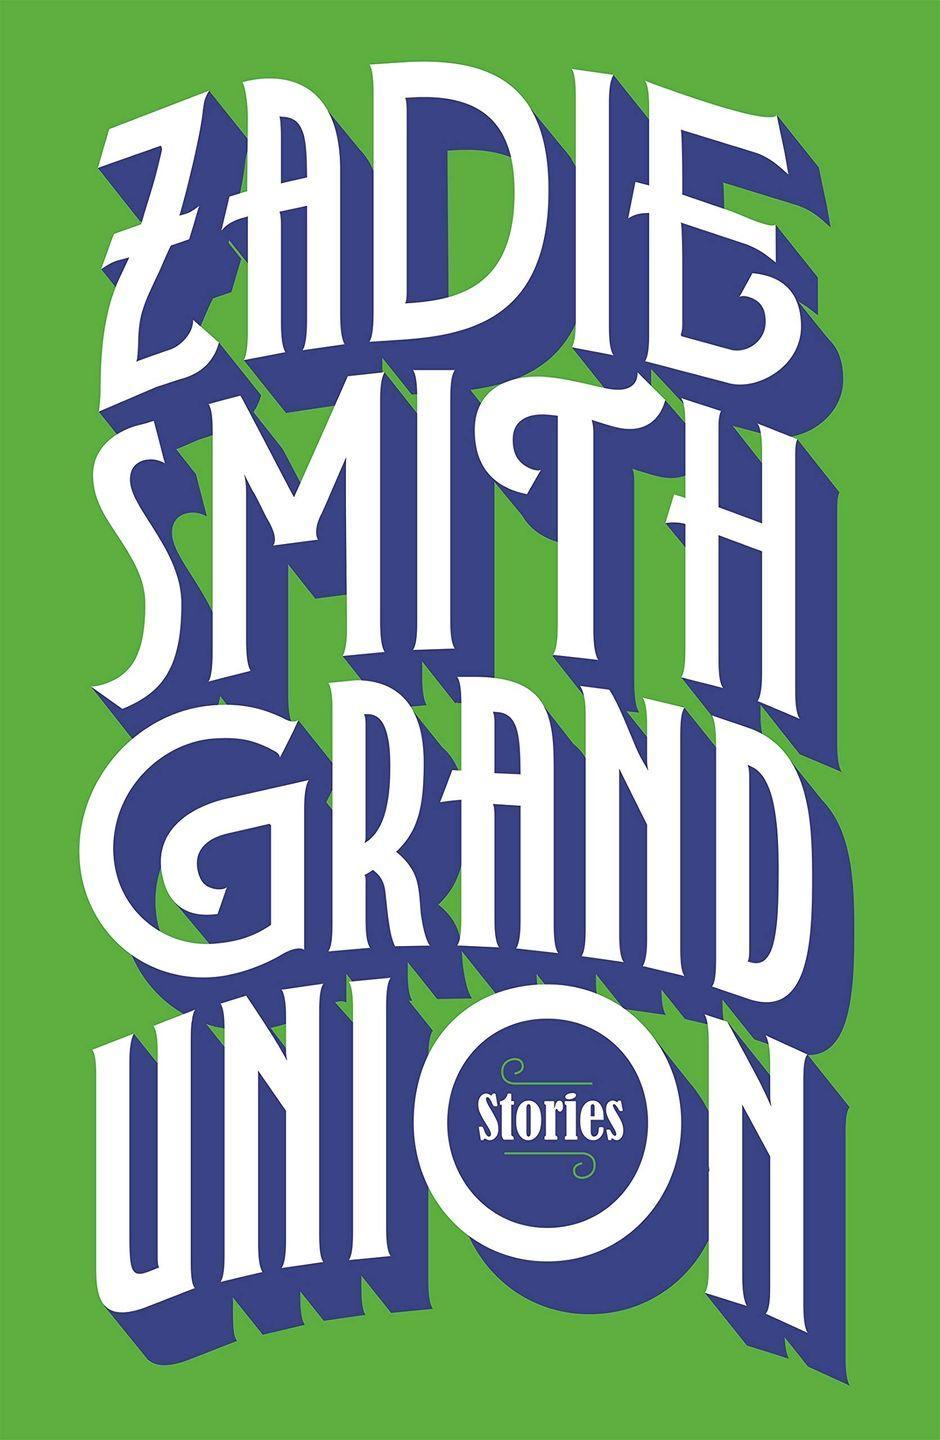 "<p>Having mastered the novel and essay formats, British literary stalwart Zadie Smith turned her pen to short stories in 2019. The 19 different tales in Grand Union are sprawling in their reach, touching on everything from single motherhood to the free speech debate in universities, objectifying men to the urban myth of Michael Jackson leaving New York with friends on the morning of 9/11, all told in Smith's commanding prose. </p><p><a class=""link rapid-noclick-resp"" href=""https://www.amazon.co.uk/Grand-Union-Zadie-Smith/dp/024133702X?tag=hearstuk-yahoo-21&ascsubtag=%5Bartid%7C1923.g.15840493%5Bsrc%7Cyahoo-uk"" rel=""nofollow noopener"" target=""_blank"" data-ylk=""slk:SHOP"">SHOP</a></p>"